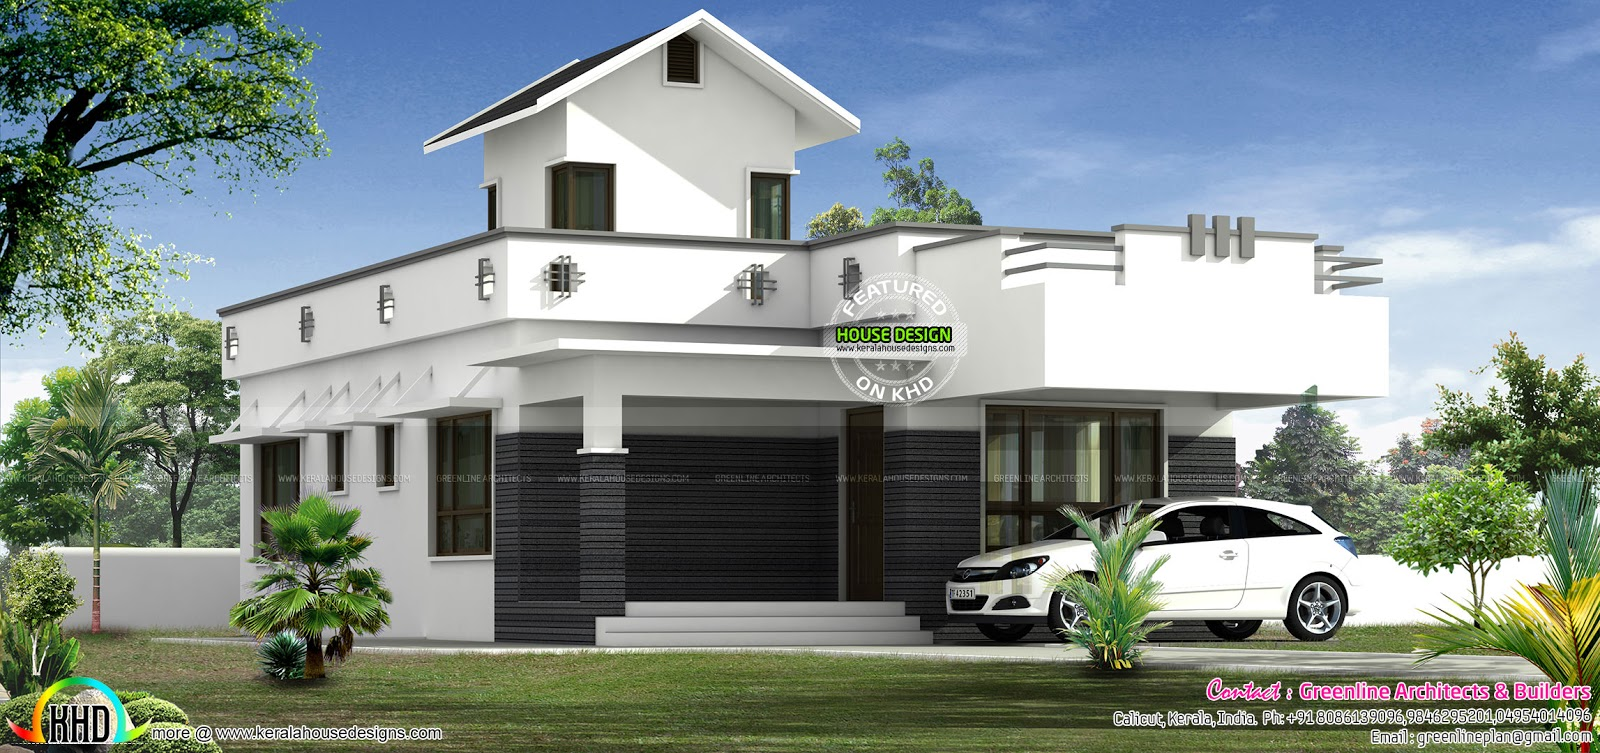 1000 sq ft 15 lakhs budget home kerala home design and for House designs 950 sq ft